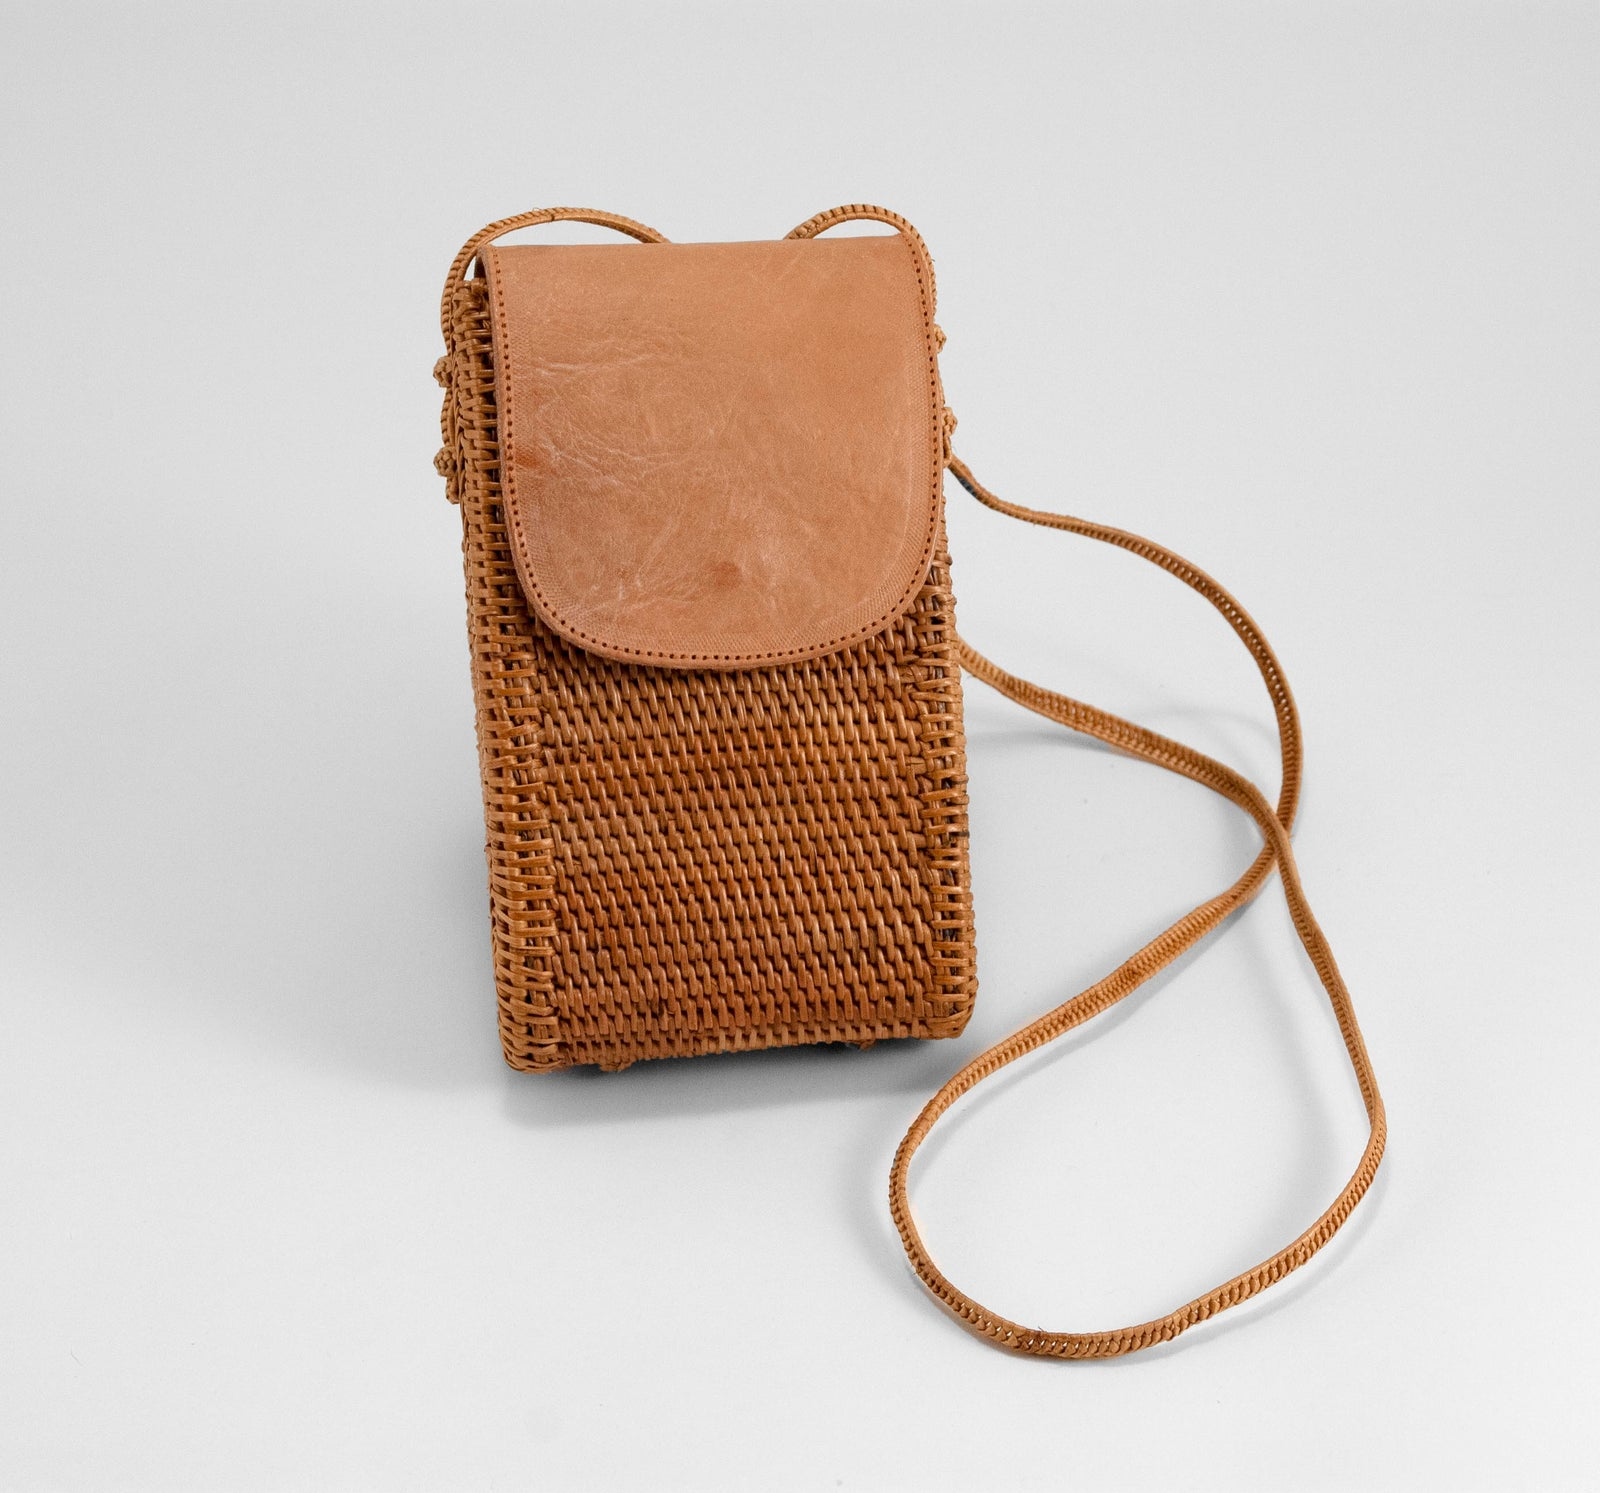 Peggy Fisher iPhone Shoulder Bag